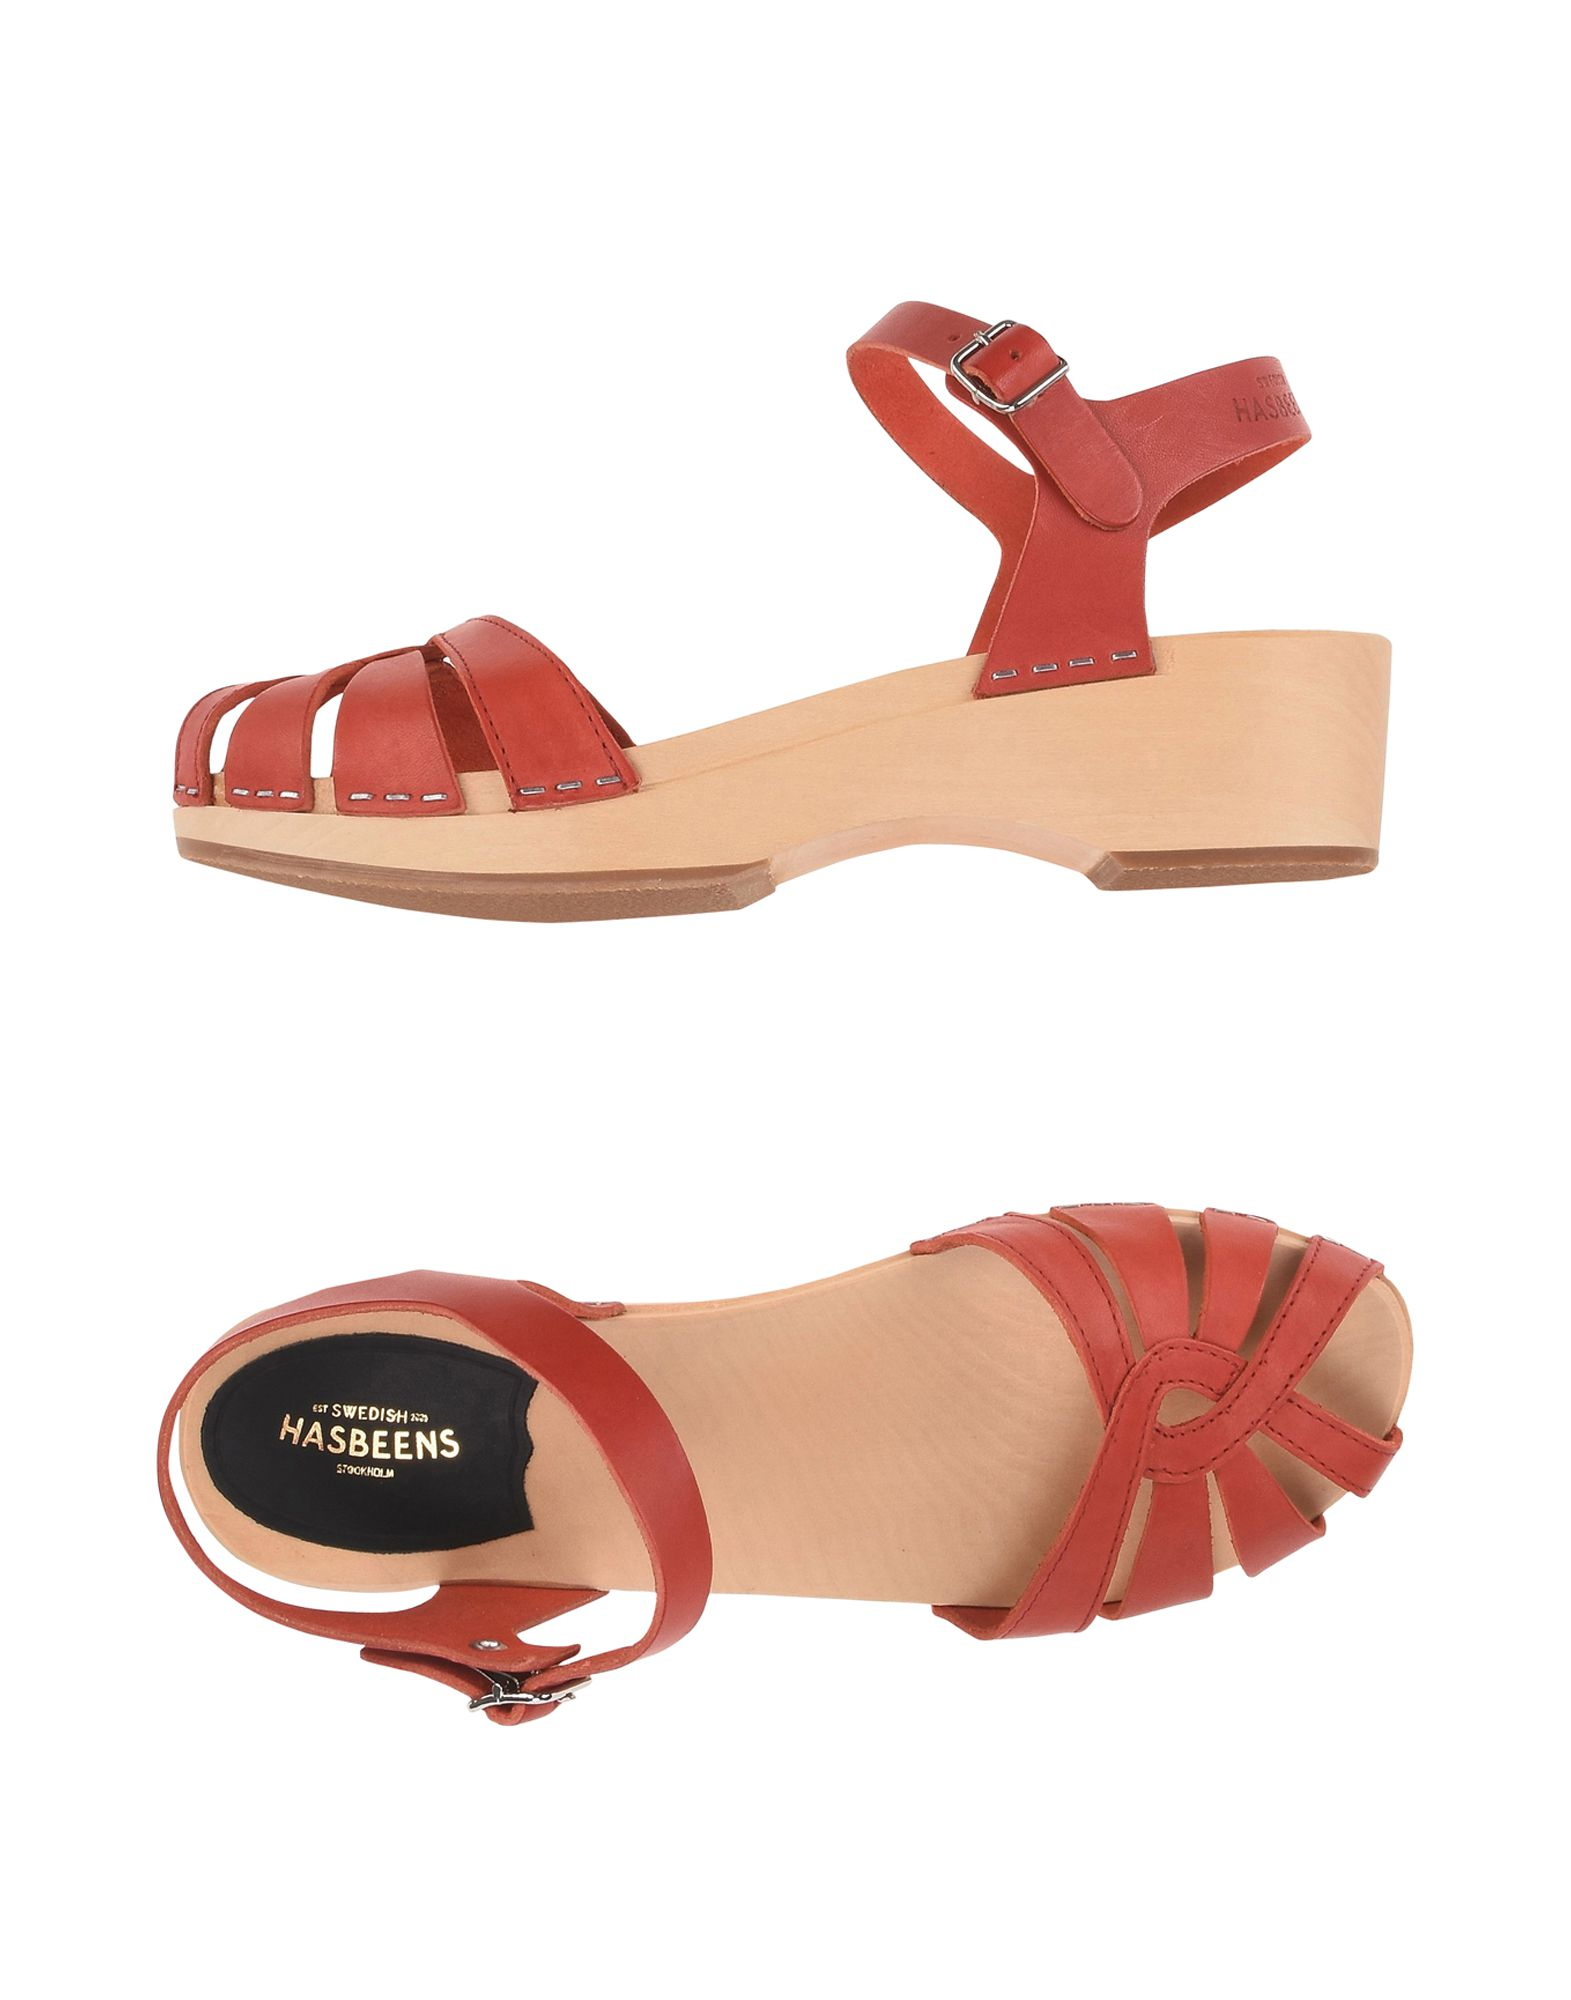 SWEDISH HASBEENS Sandals in Red